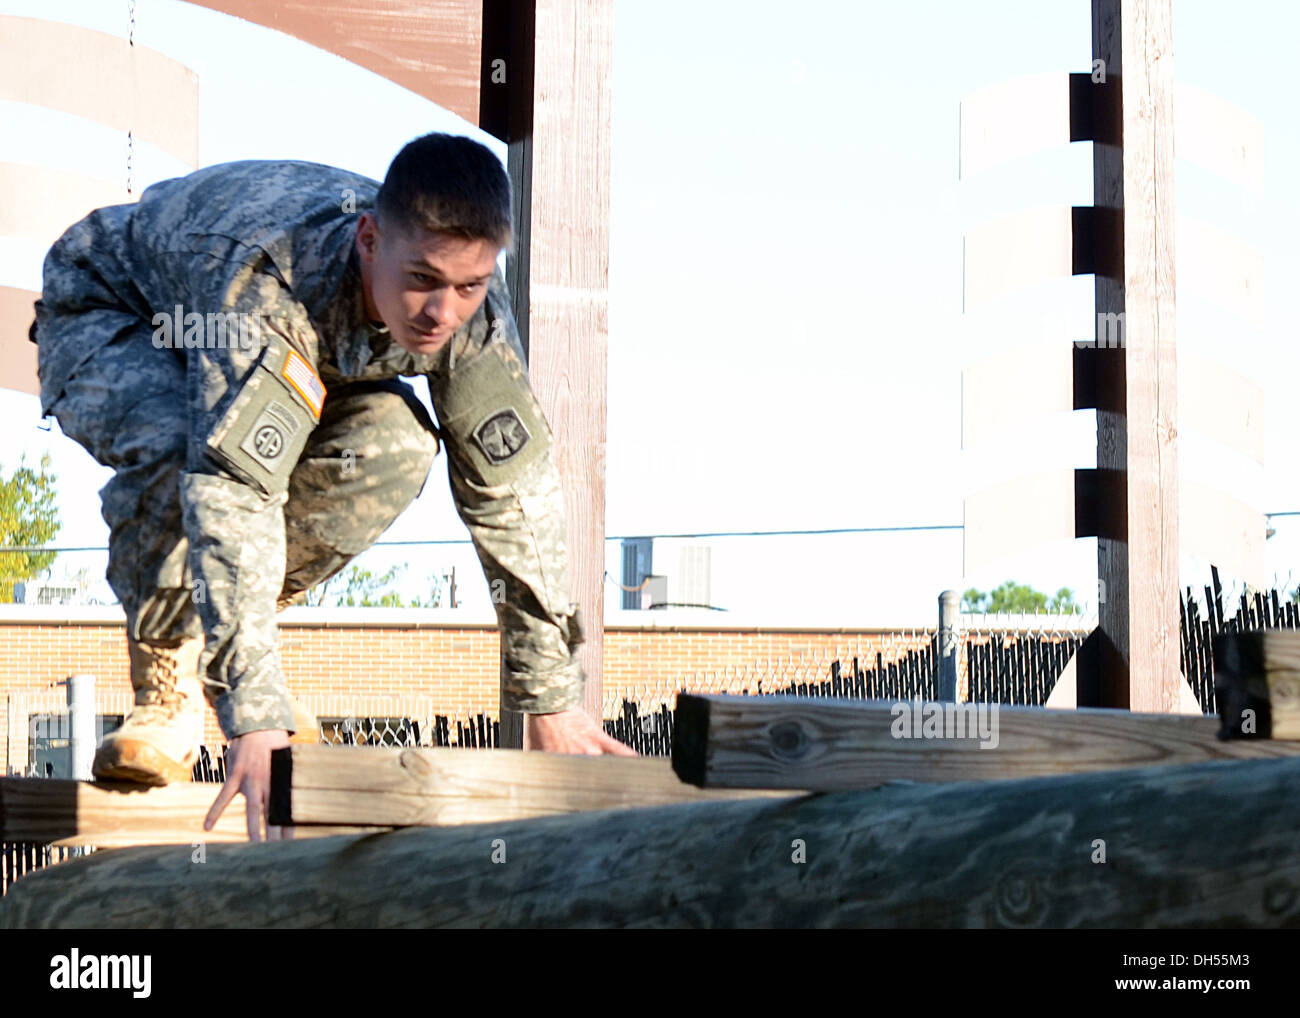 Sgt. Zachery M. Pryor of Litchfield, Ill. meets the challenge trying out for a position on the Fort Bragg Special Reaction Team - Stock Image